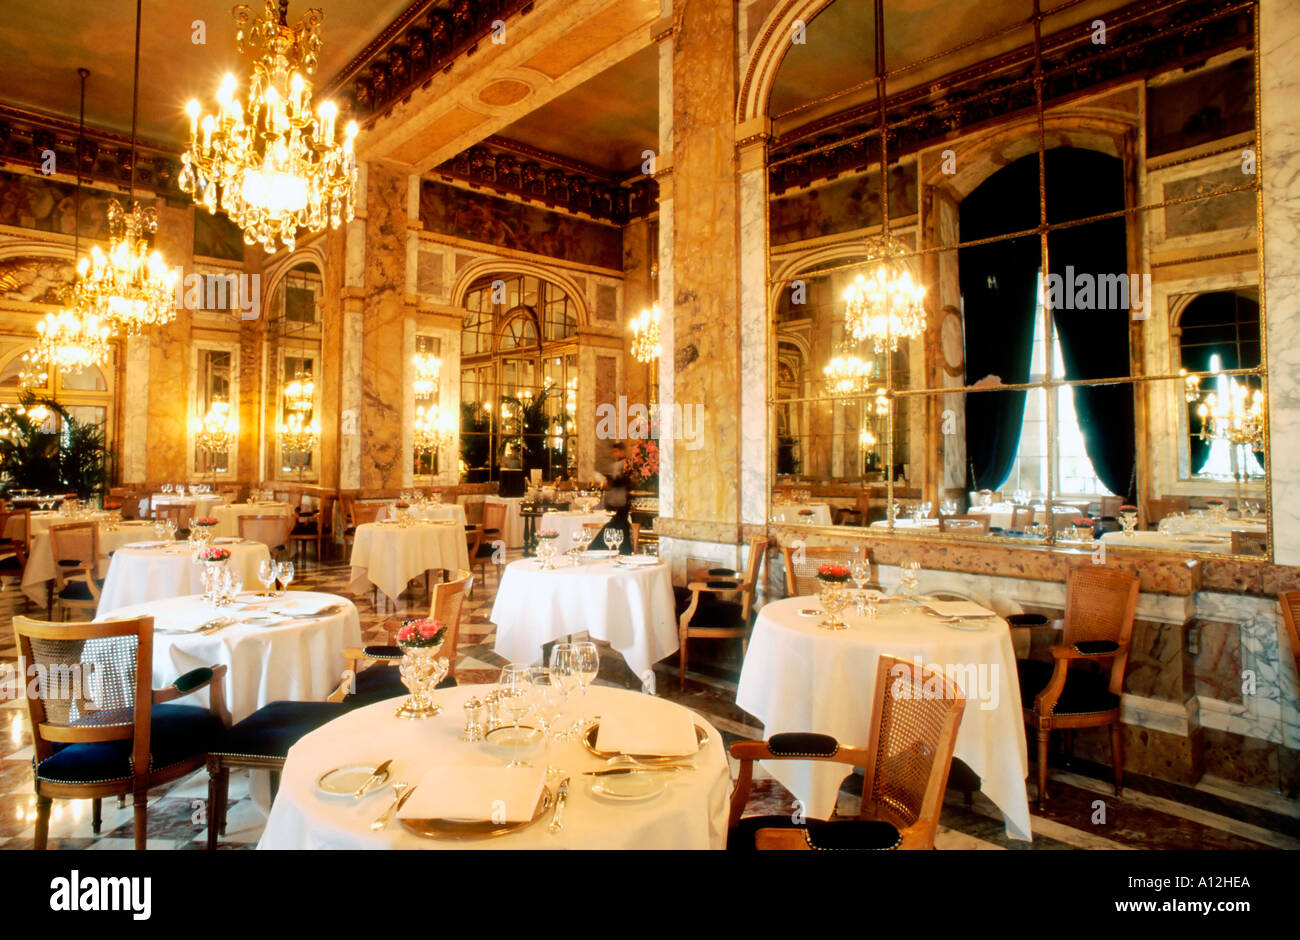 paris france french haute cuisine restaurant dining room